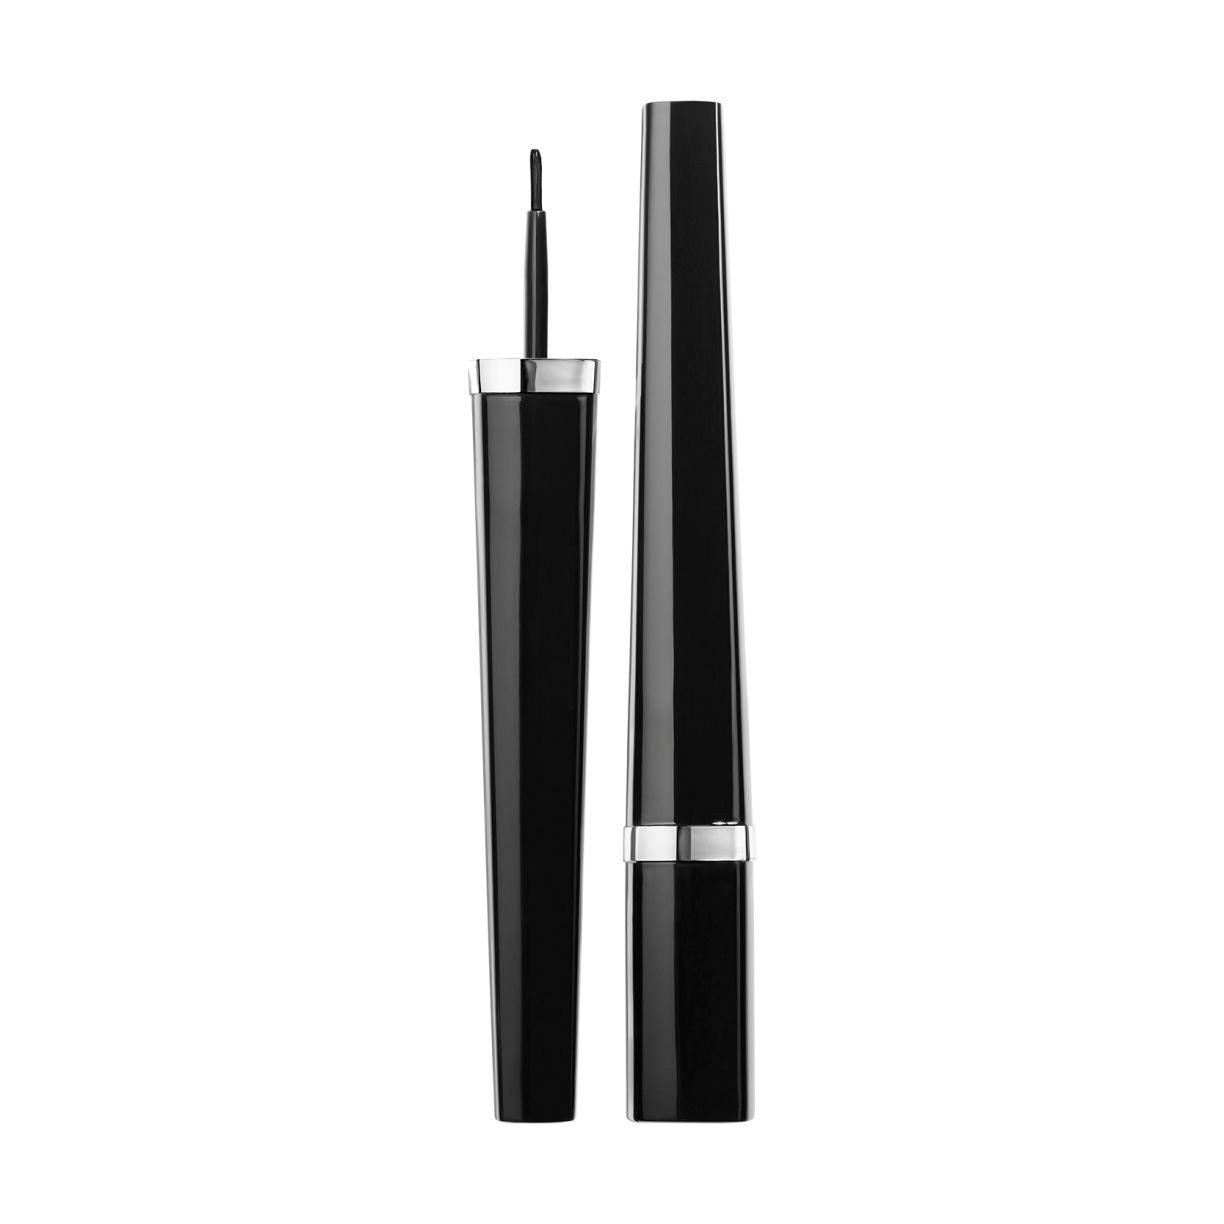 LIGNE GRAPHIQUE DE CHANEL VLOEIBARE EYELINER INTENSITEIT DEFINITIE 10 - NOIR-NOIR